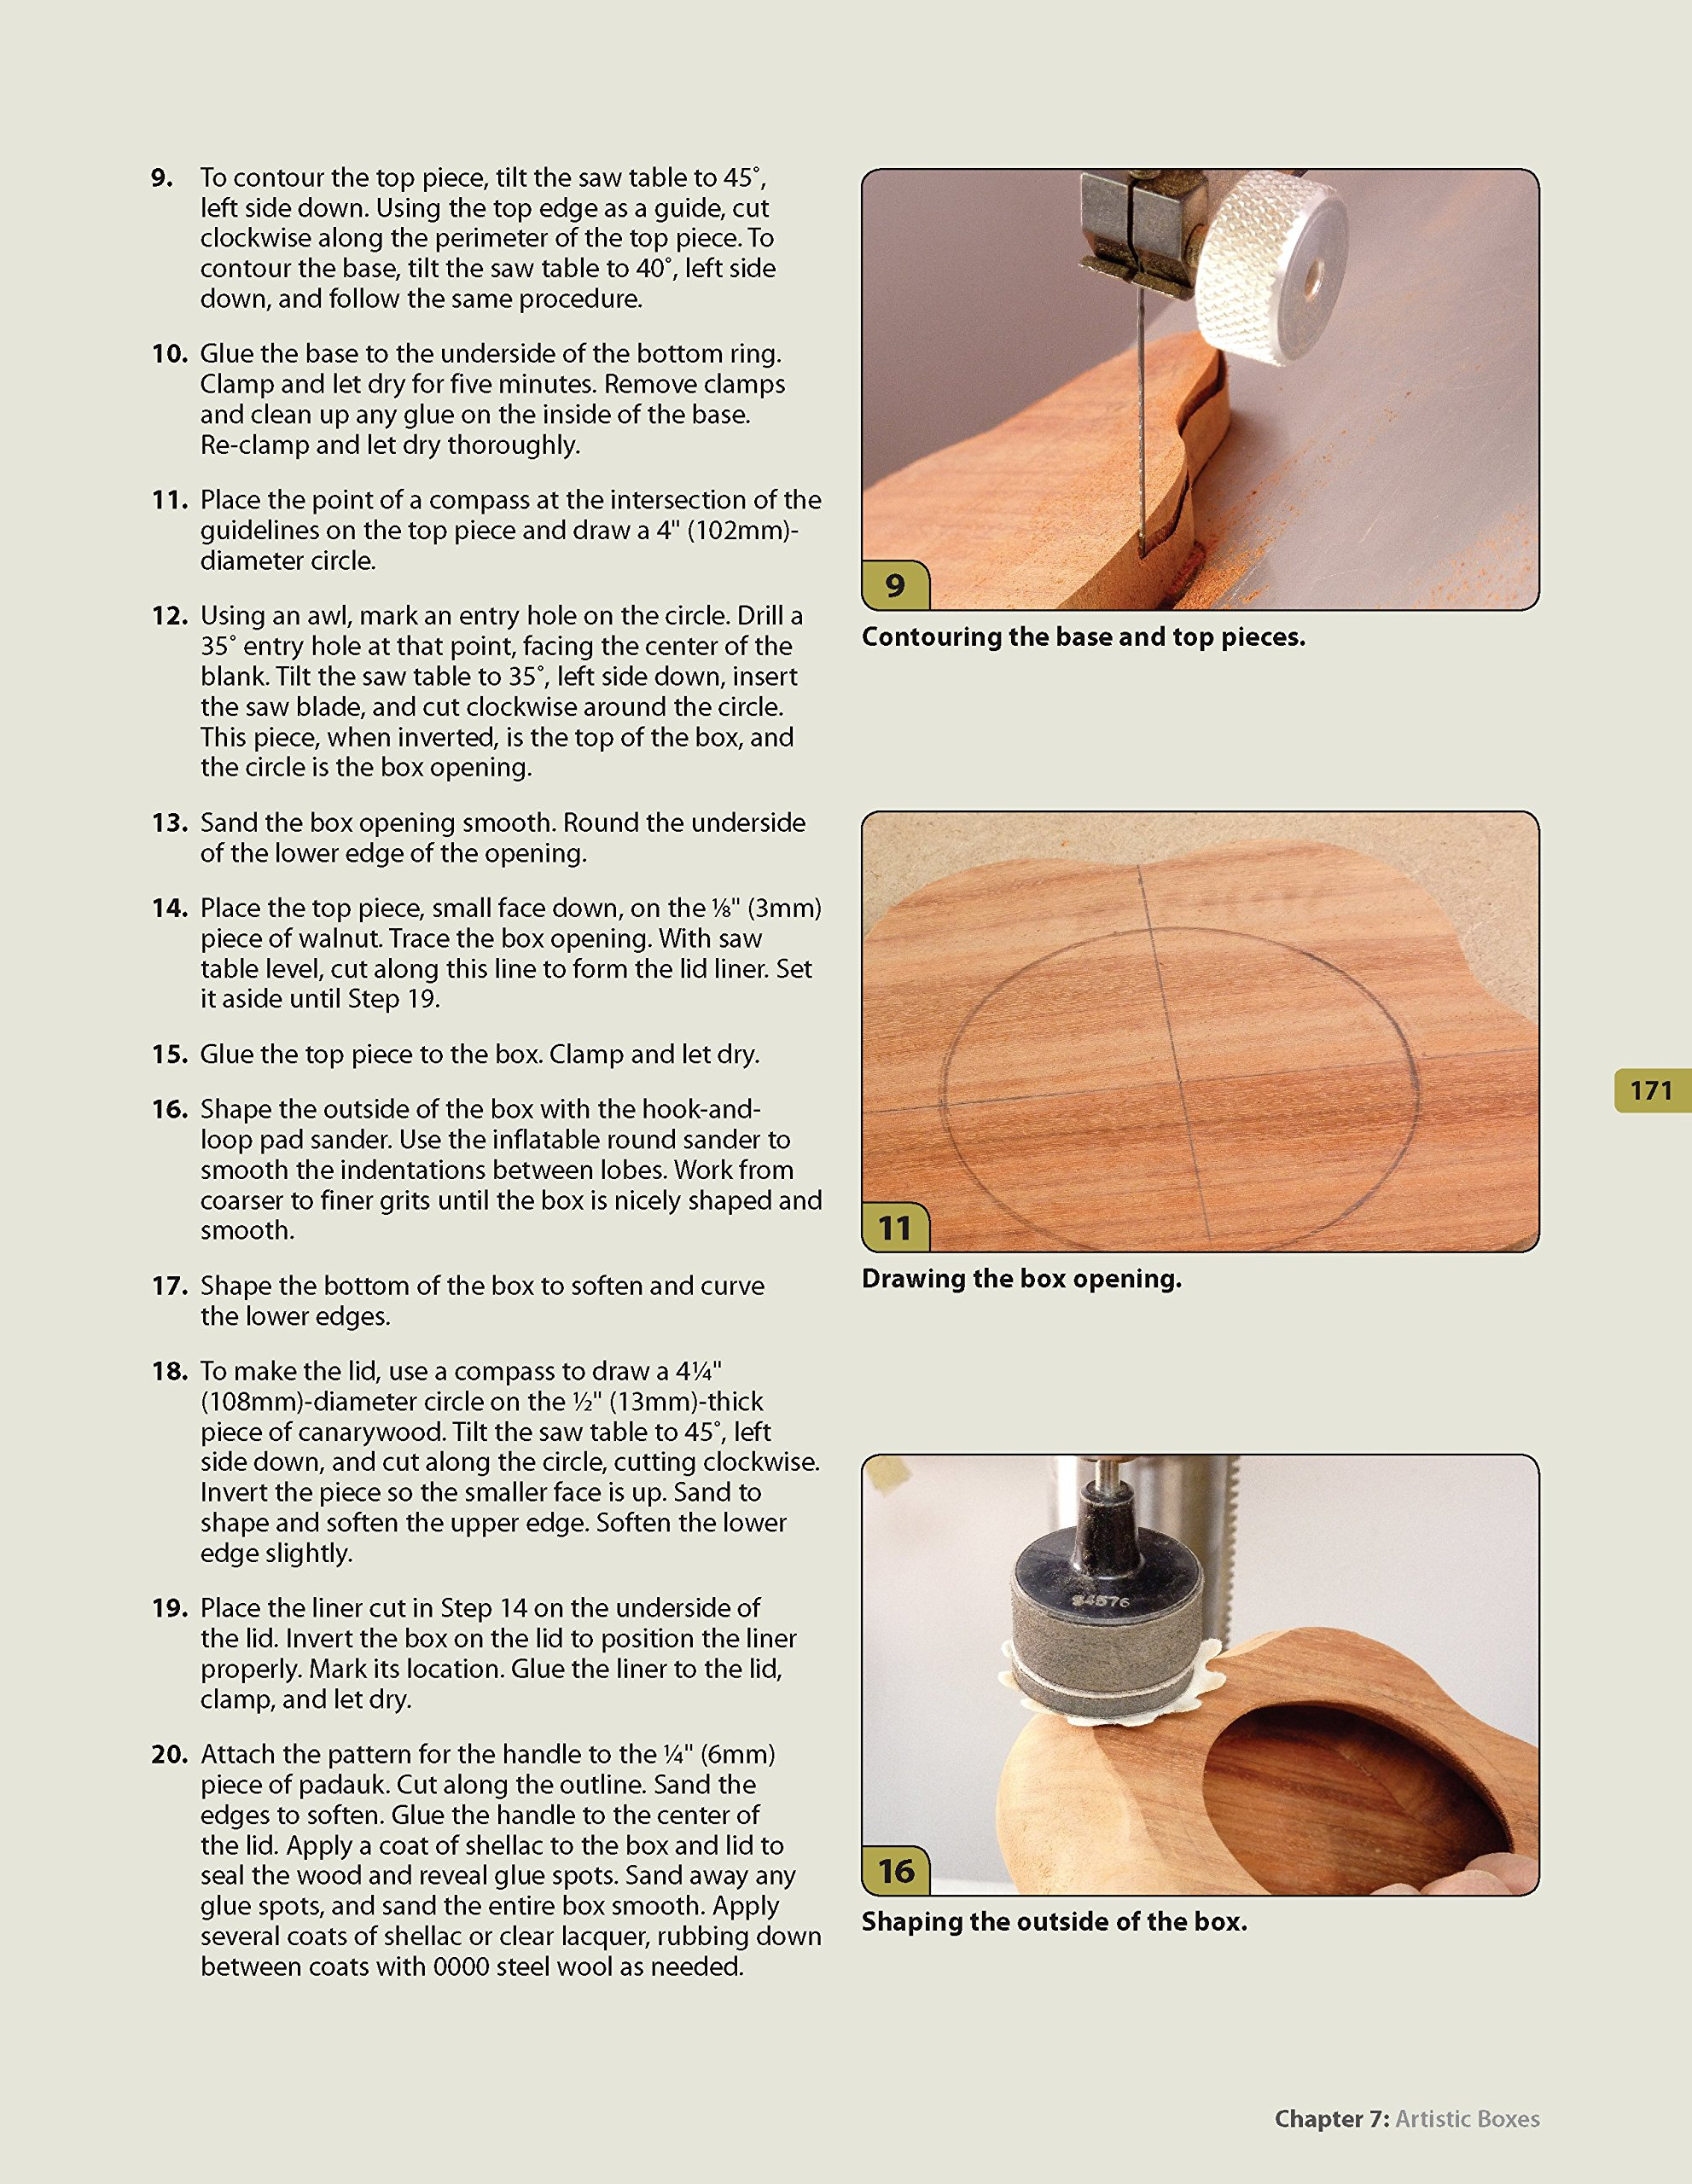 Creative Wooden Boxes from the Scroll Saw: 28 Useful & Surprisingly Easy-to-